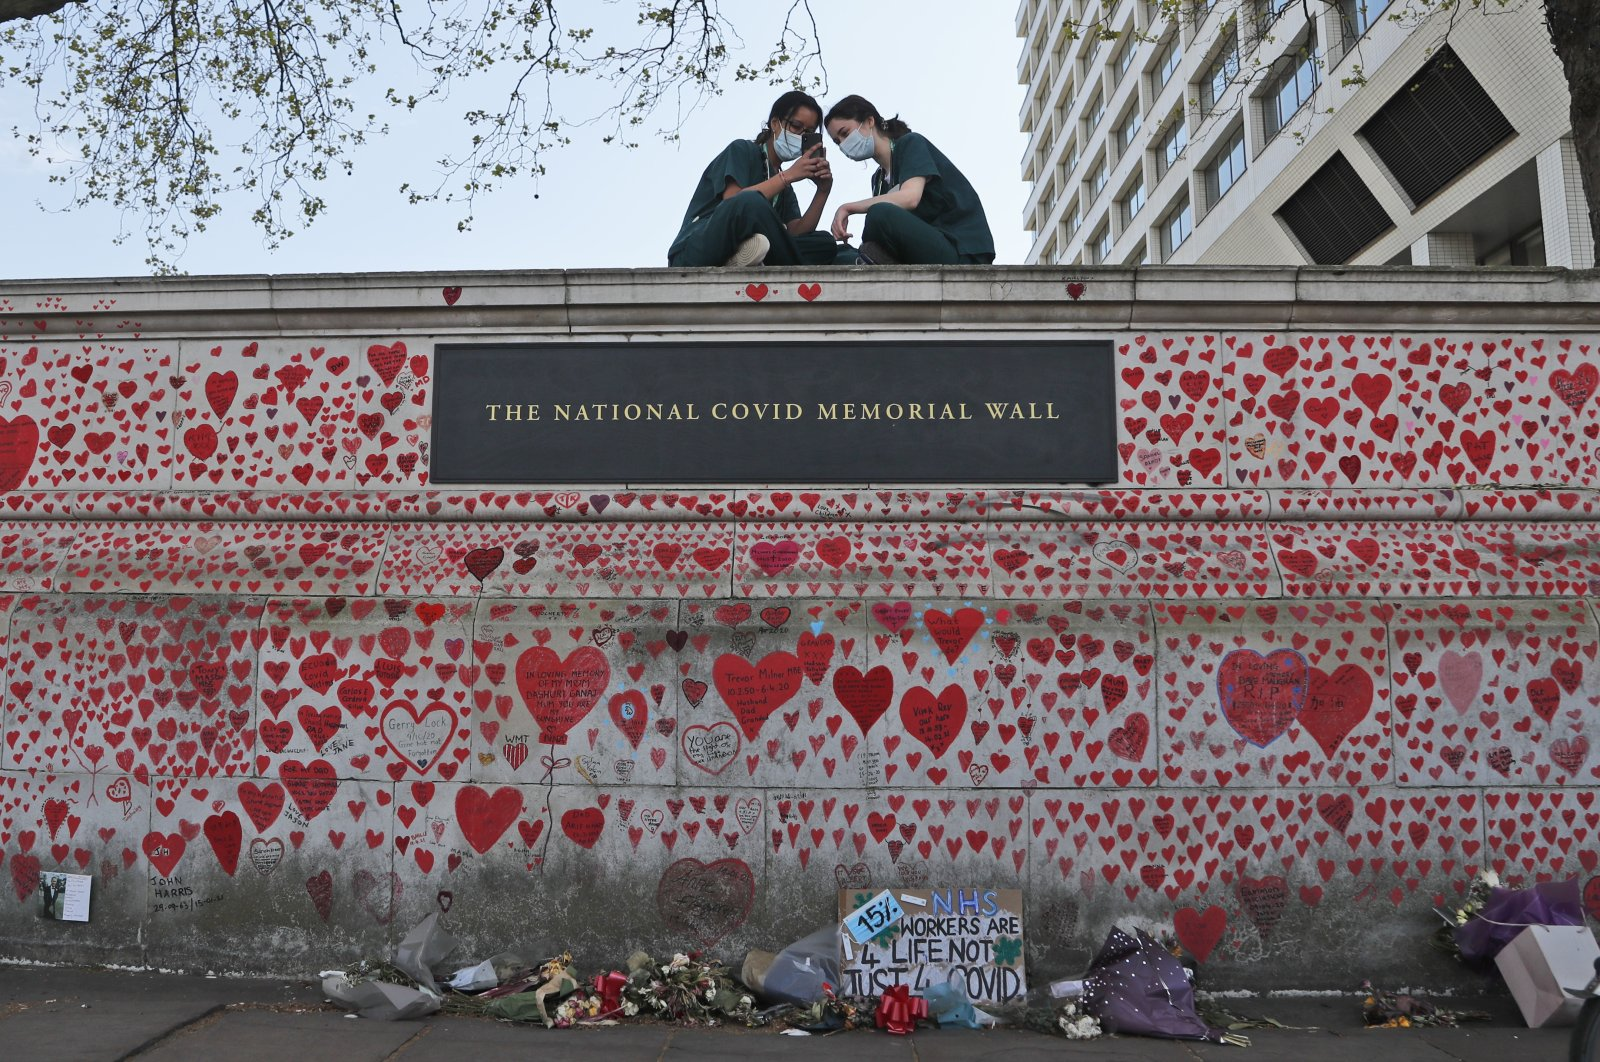 Nurses from the nearby St Thomas' hospital sit atop the National Covid Memorial Wall in London, U.K., Tuesday, April 27, 2021. (AP Photo)